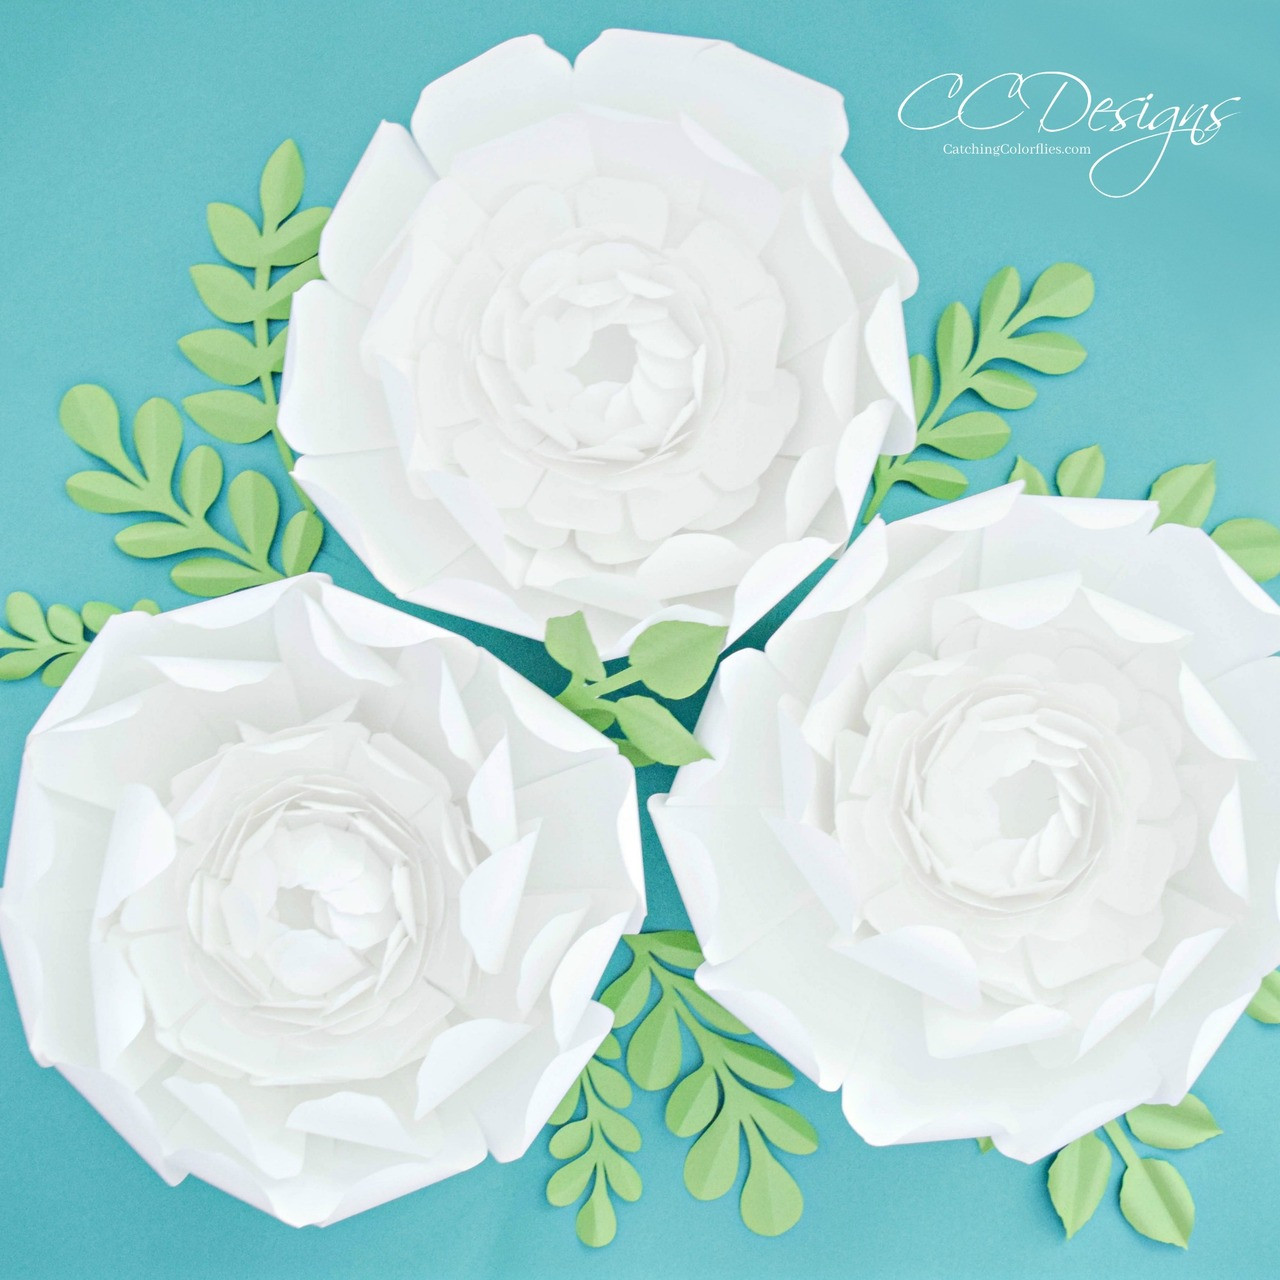 Giant Paper Snow Peony Flower Template With Vines